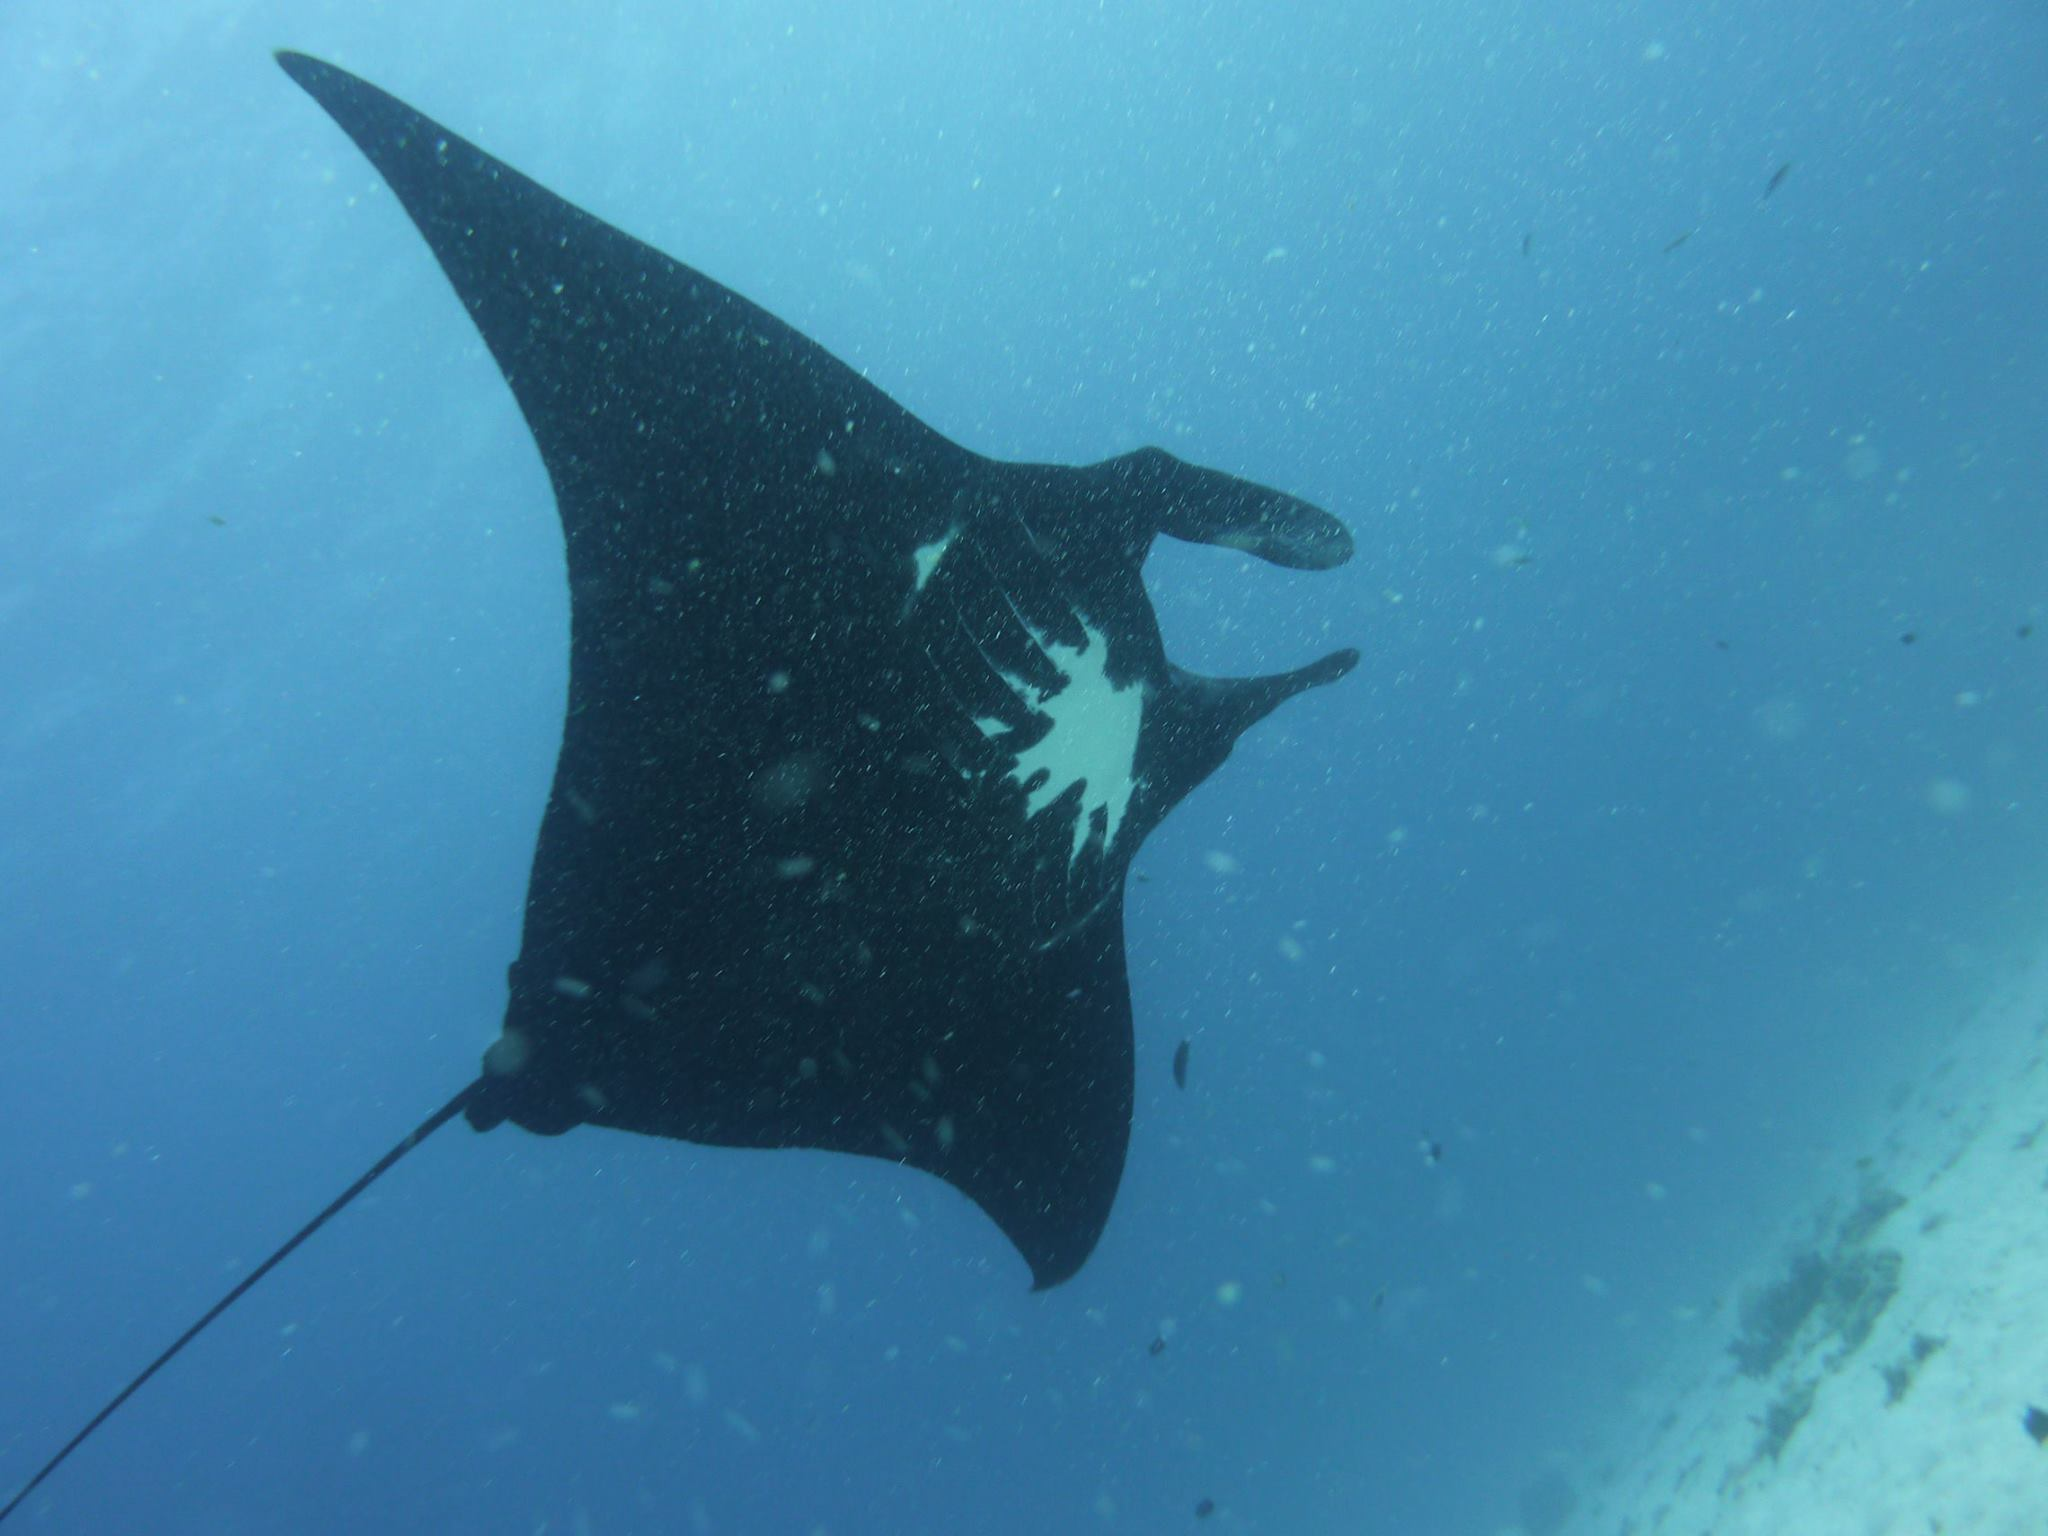 Taurus has some quite distinctive underbelly markings. Pictures like this can be used to ID Manta Rays.